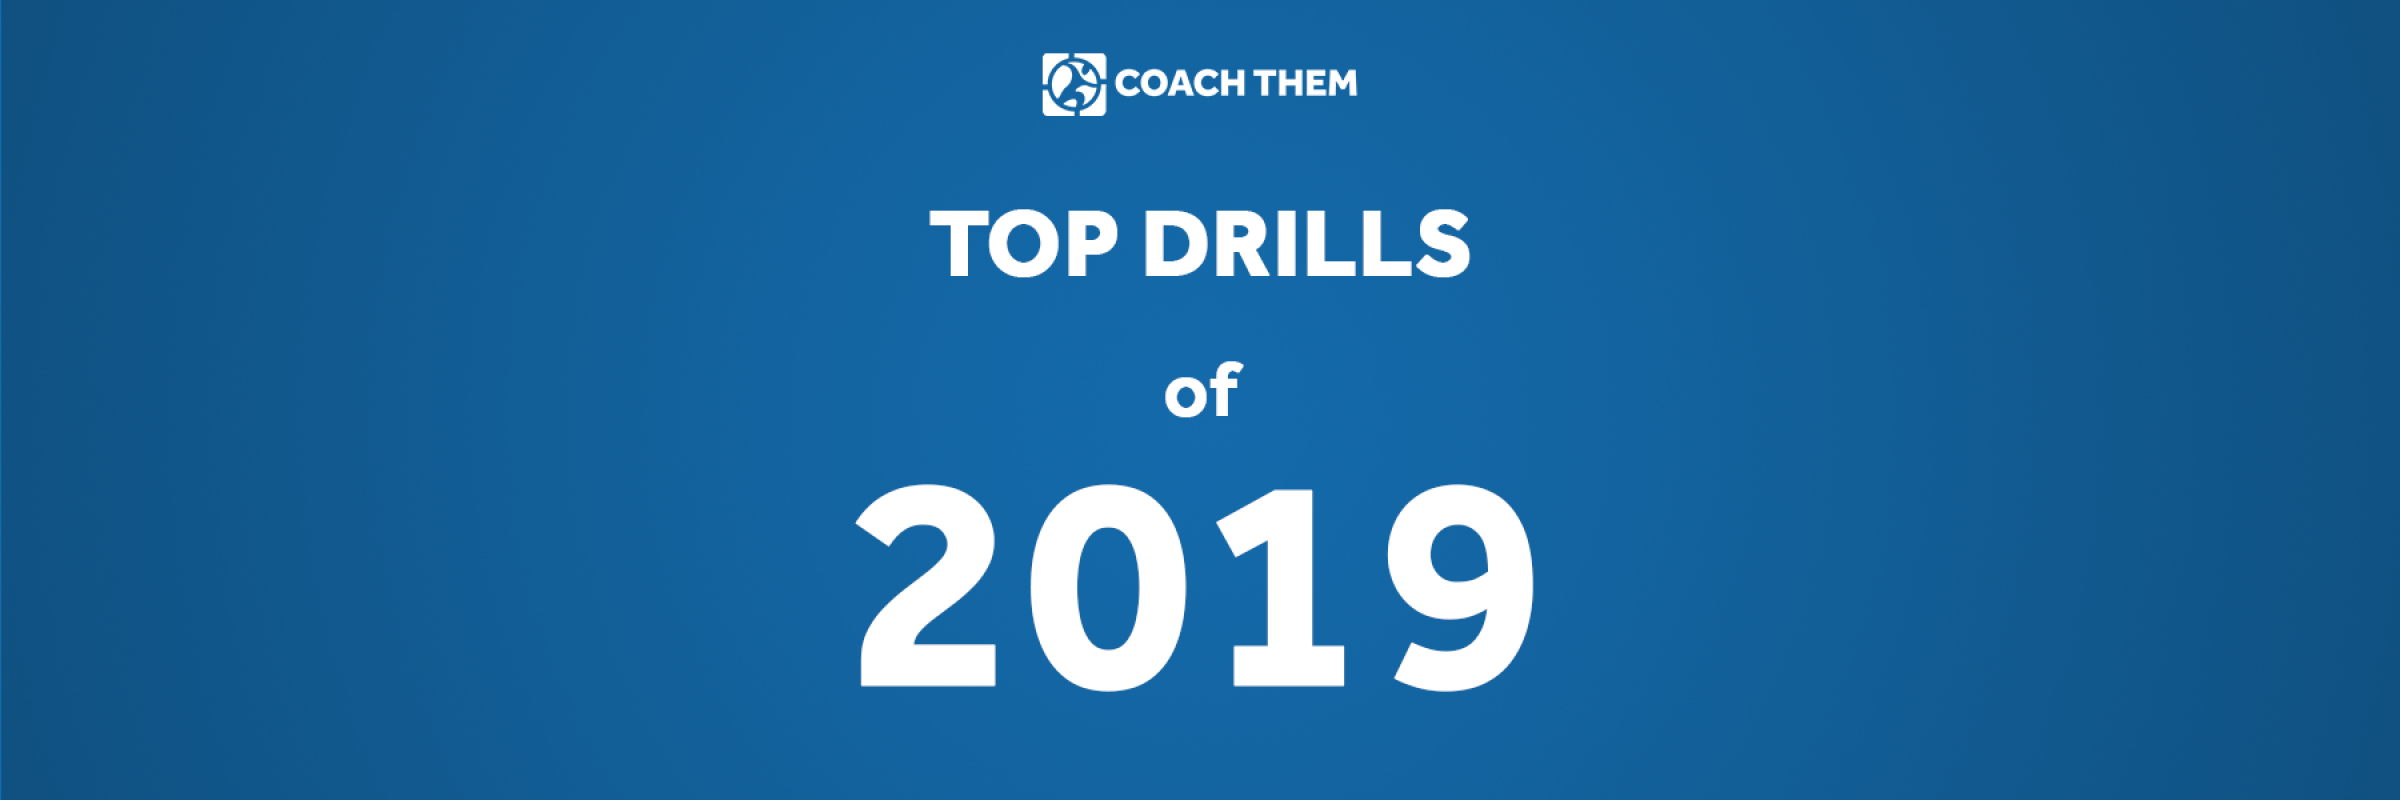 CoachThem's Top Drills of 2019